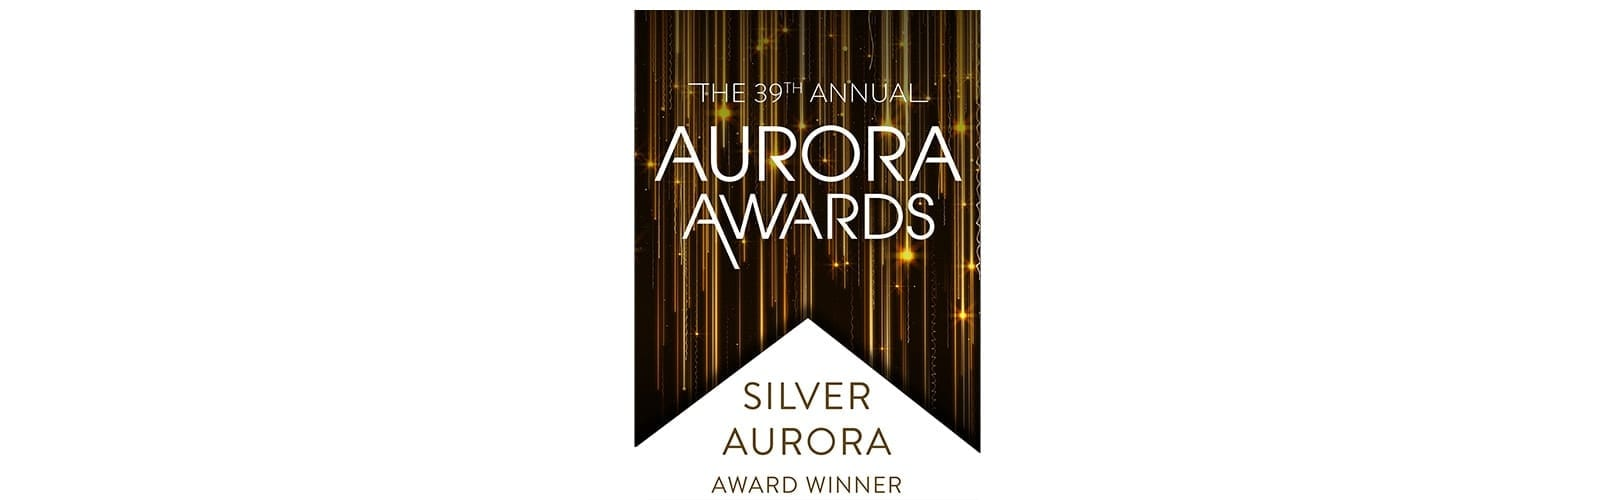 Silver Aurora Awards won by Naples Reserve